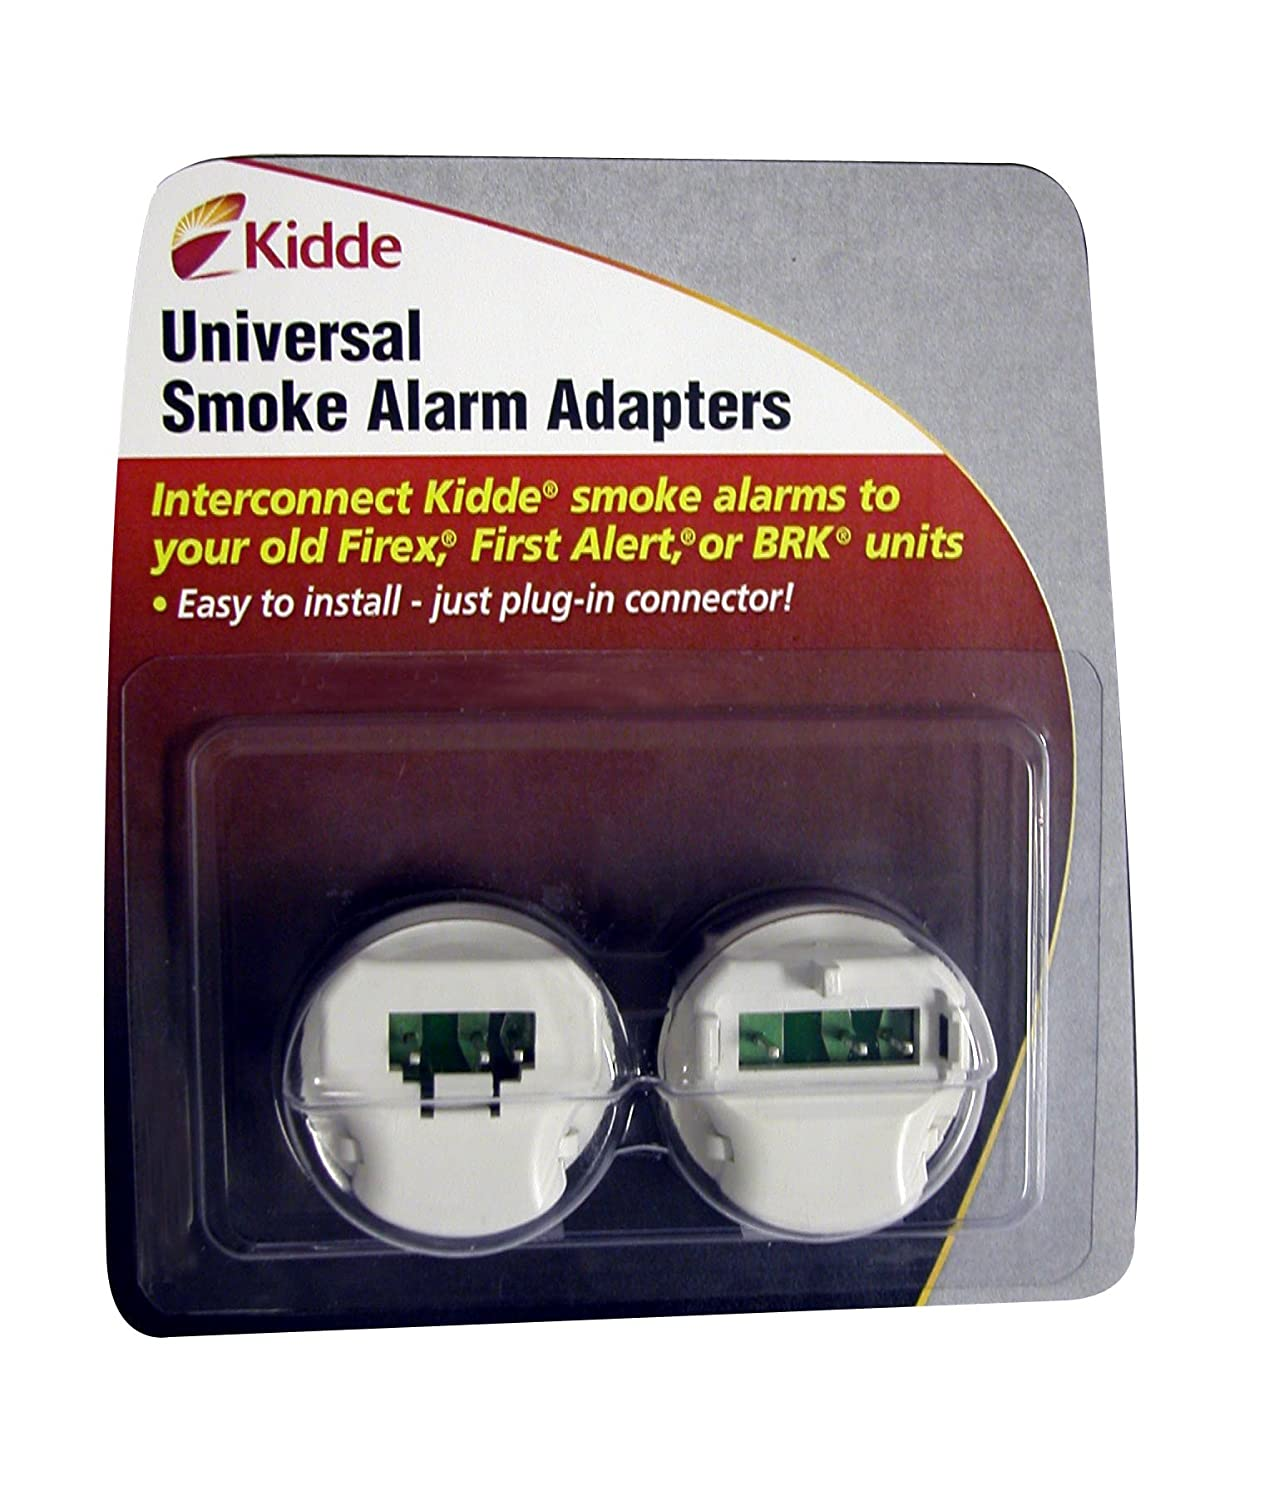 814Se4H5loL._SL1500_ kidde ka b, ka f universal smoke alarm adapters, 2 different units smoke detector wiring harness at virtualis.co